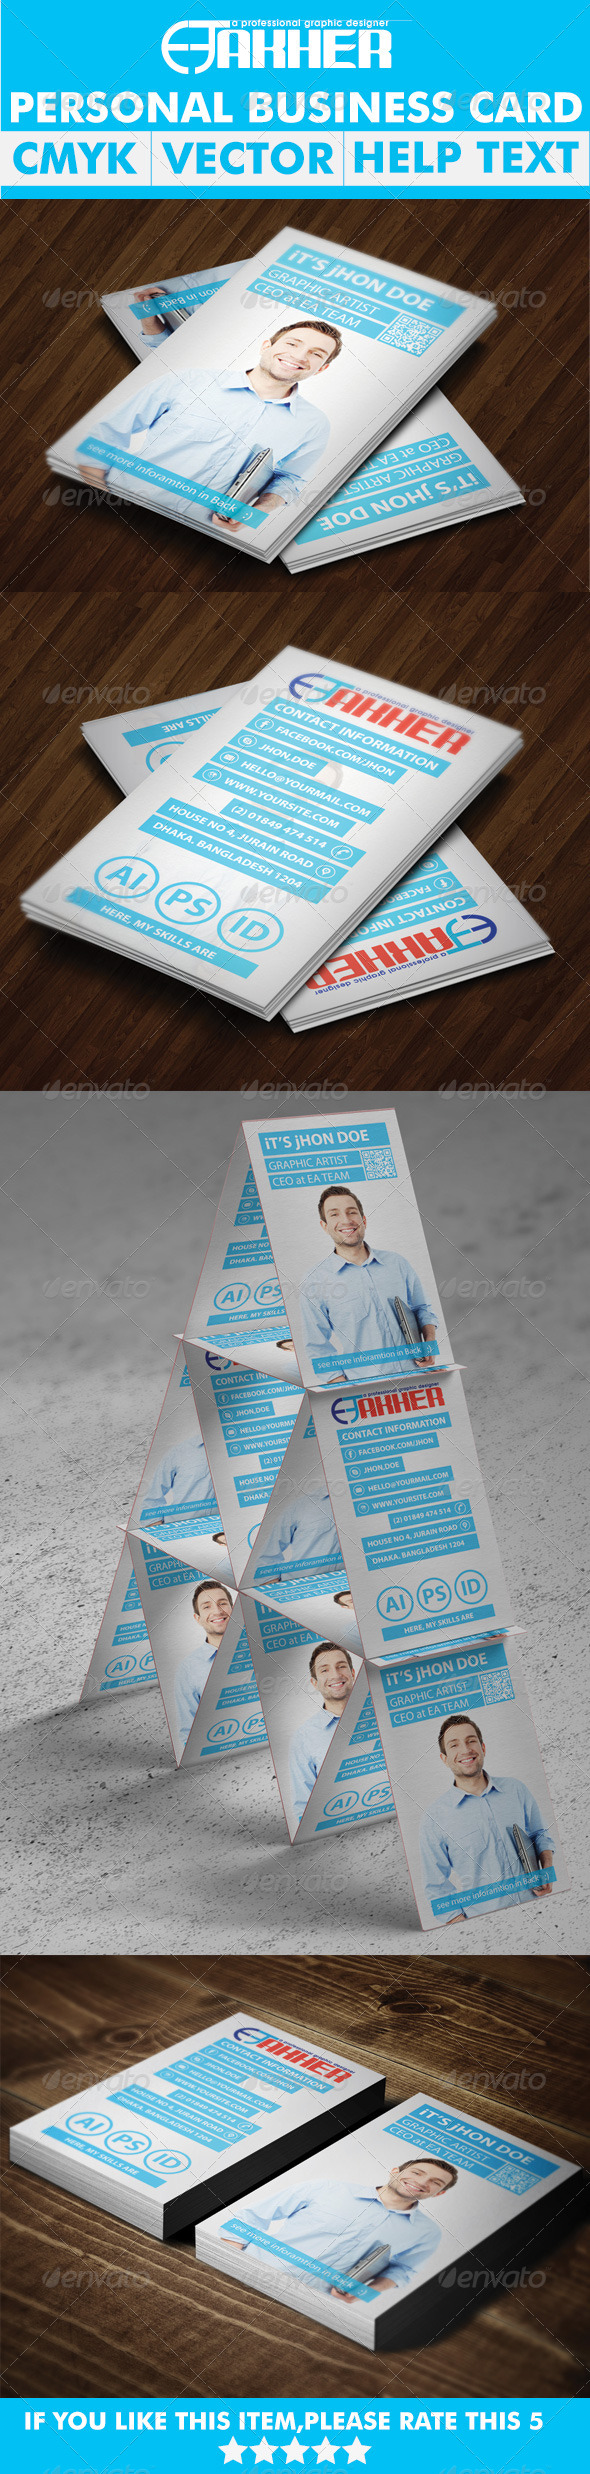 GraphicRiver Personal Business Card 5637254